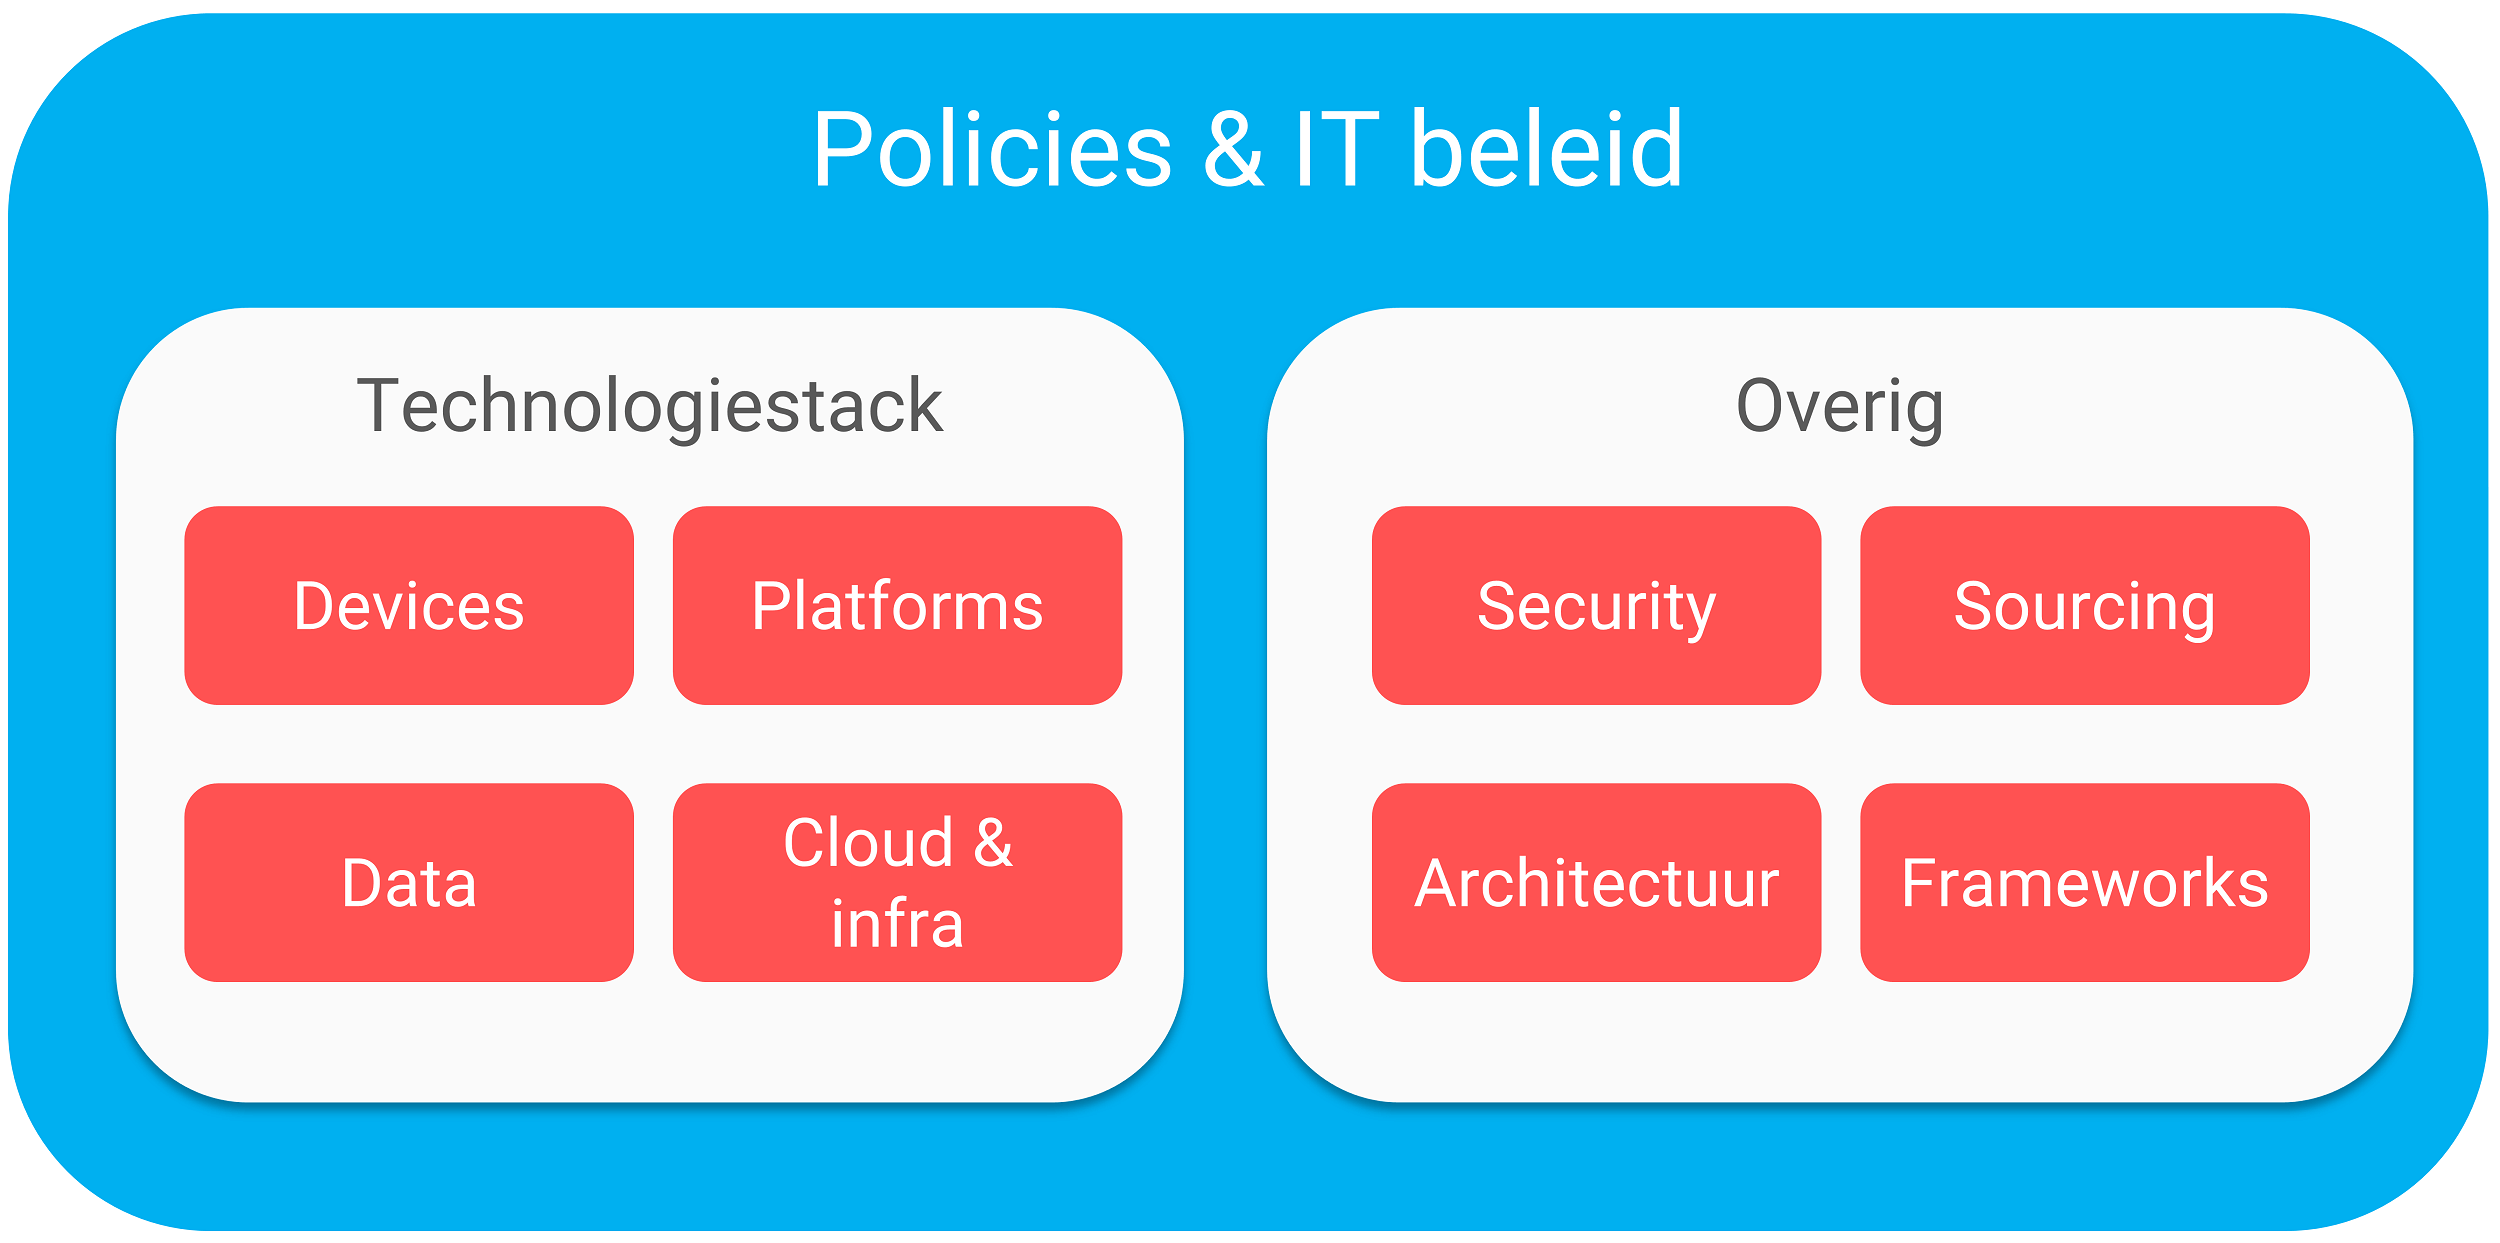 IT beleid & IT policies